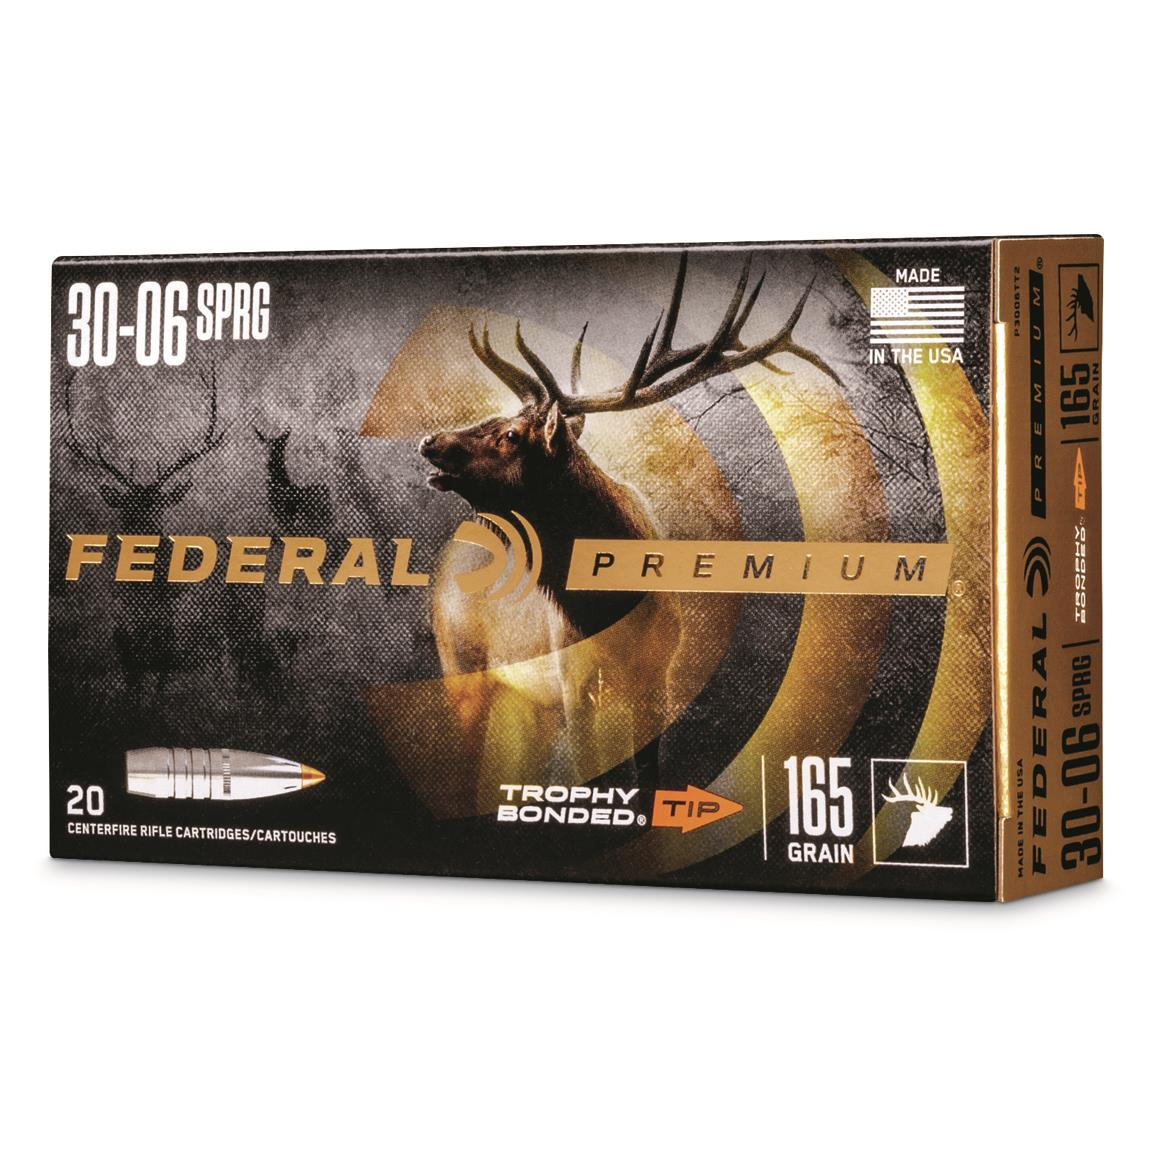 Federal, .30-06 Springfield, TBT, 165 Grain, 20 Rounds